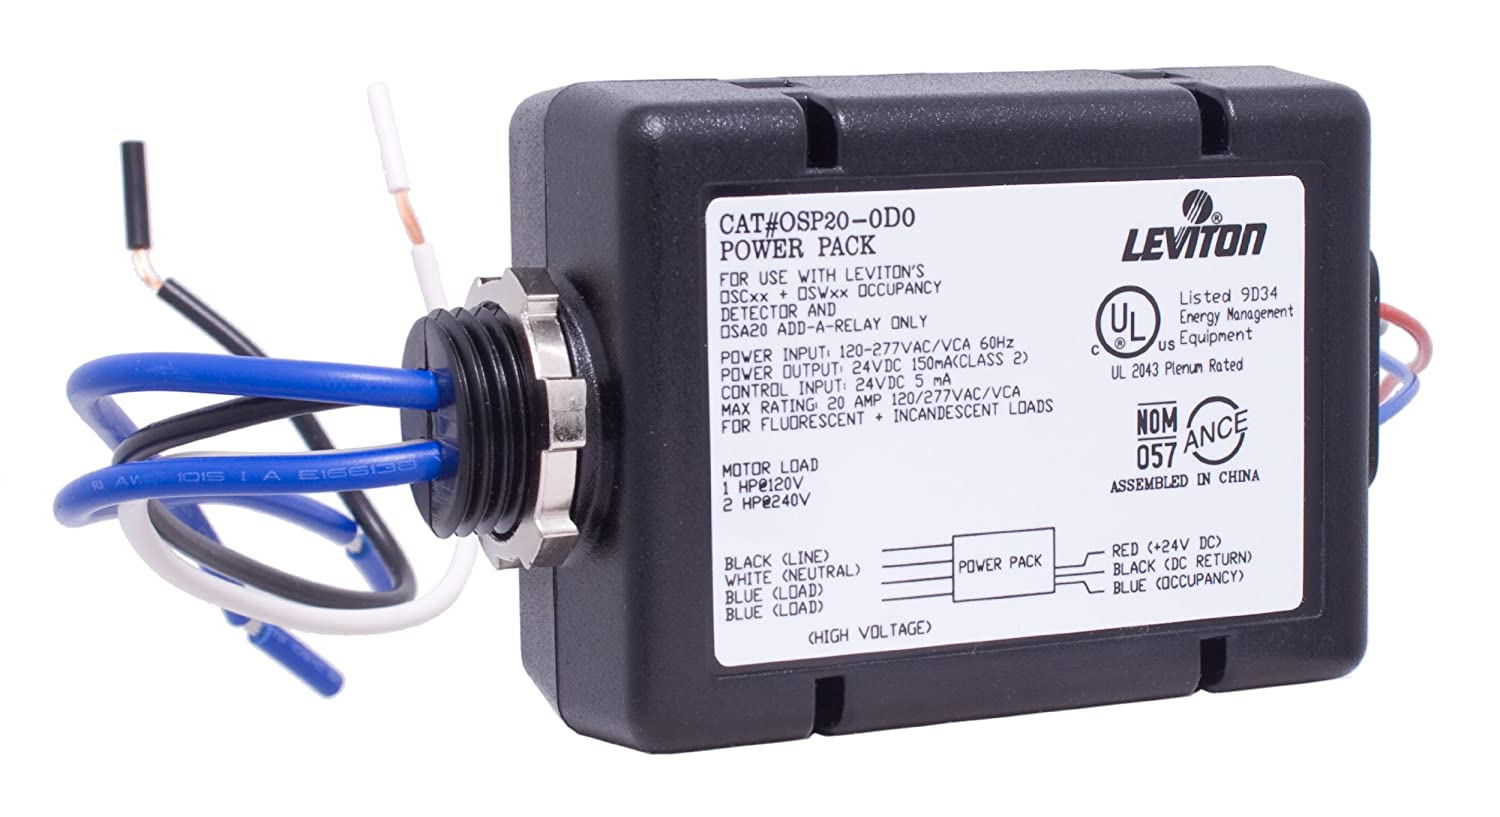 81Cz2ARRDsL._SL1500_ leviton osp20 d0 power pack for occupancy sensor, 20 amp fl inc leviton osc20 m0w wiring diagram at creativeand.co